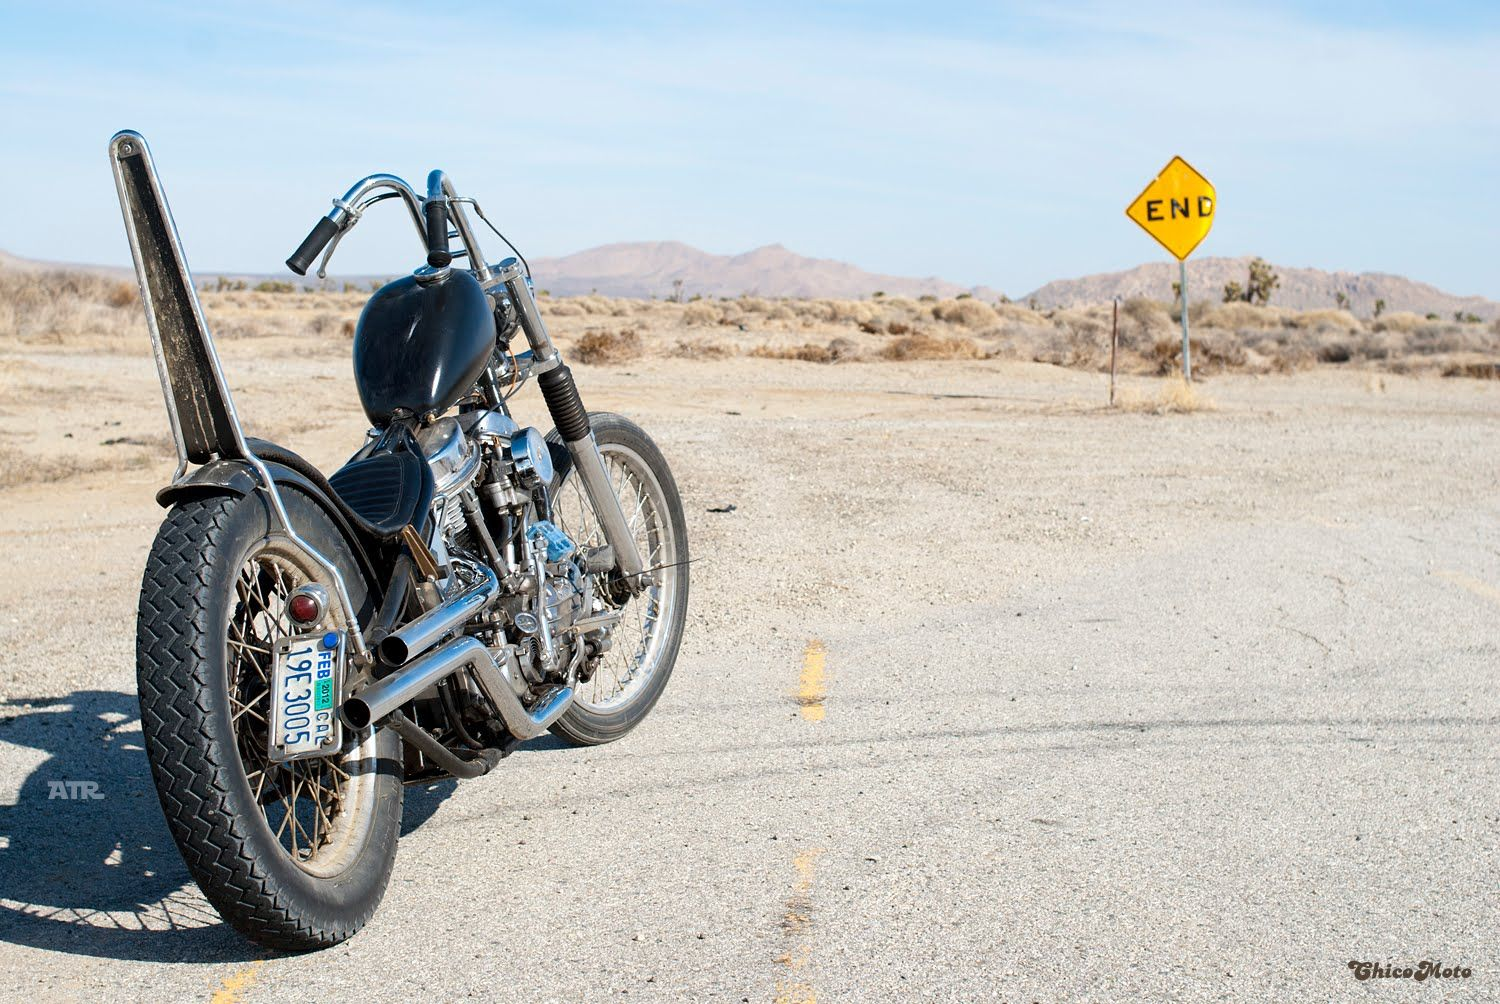 Pics wanted: Rabbit ear handlebars on a wide glide front end? - The